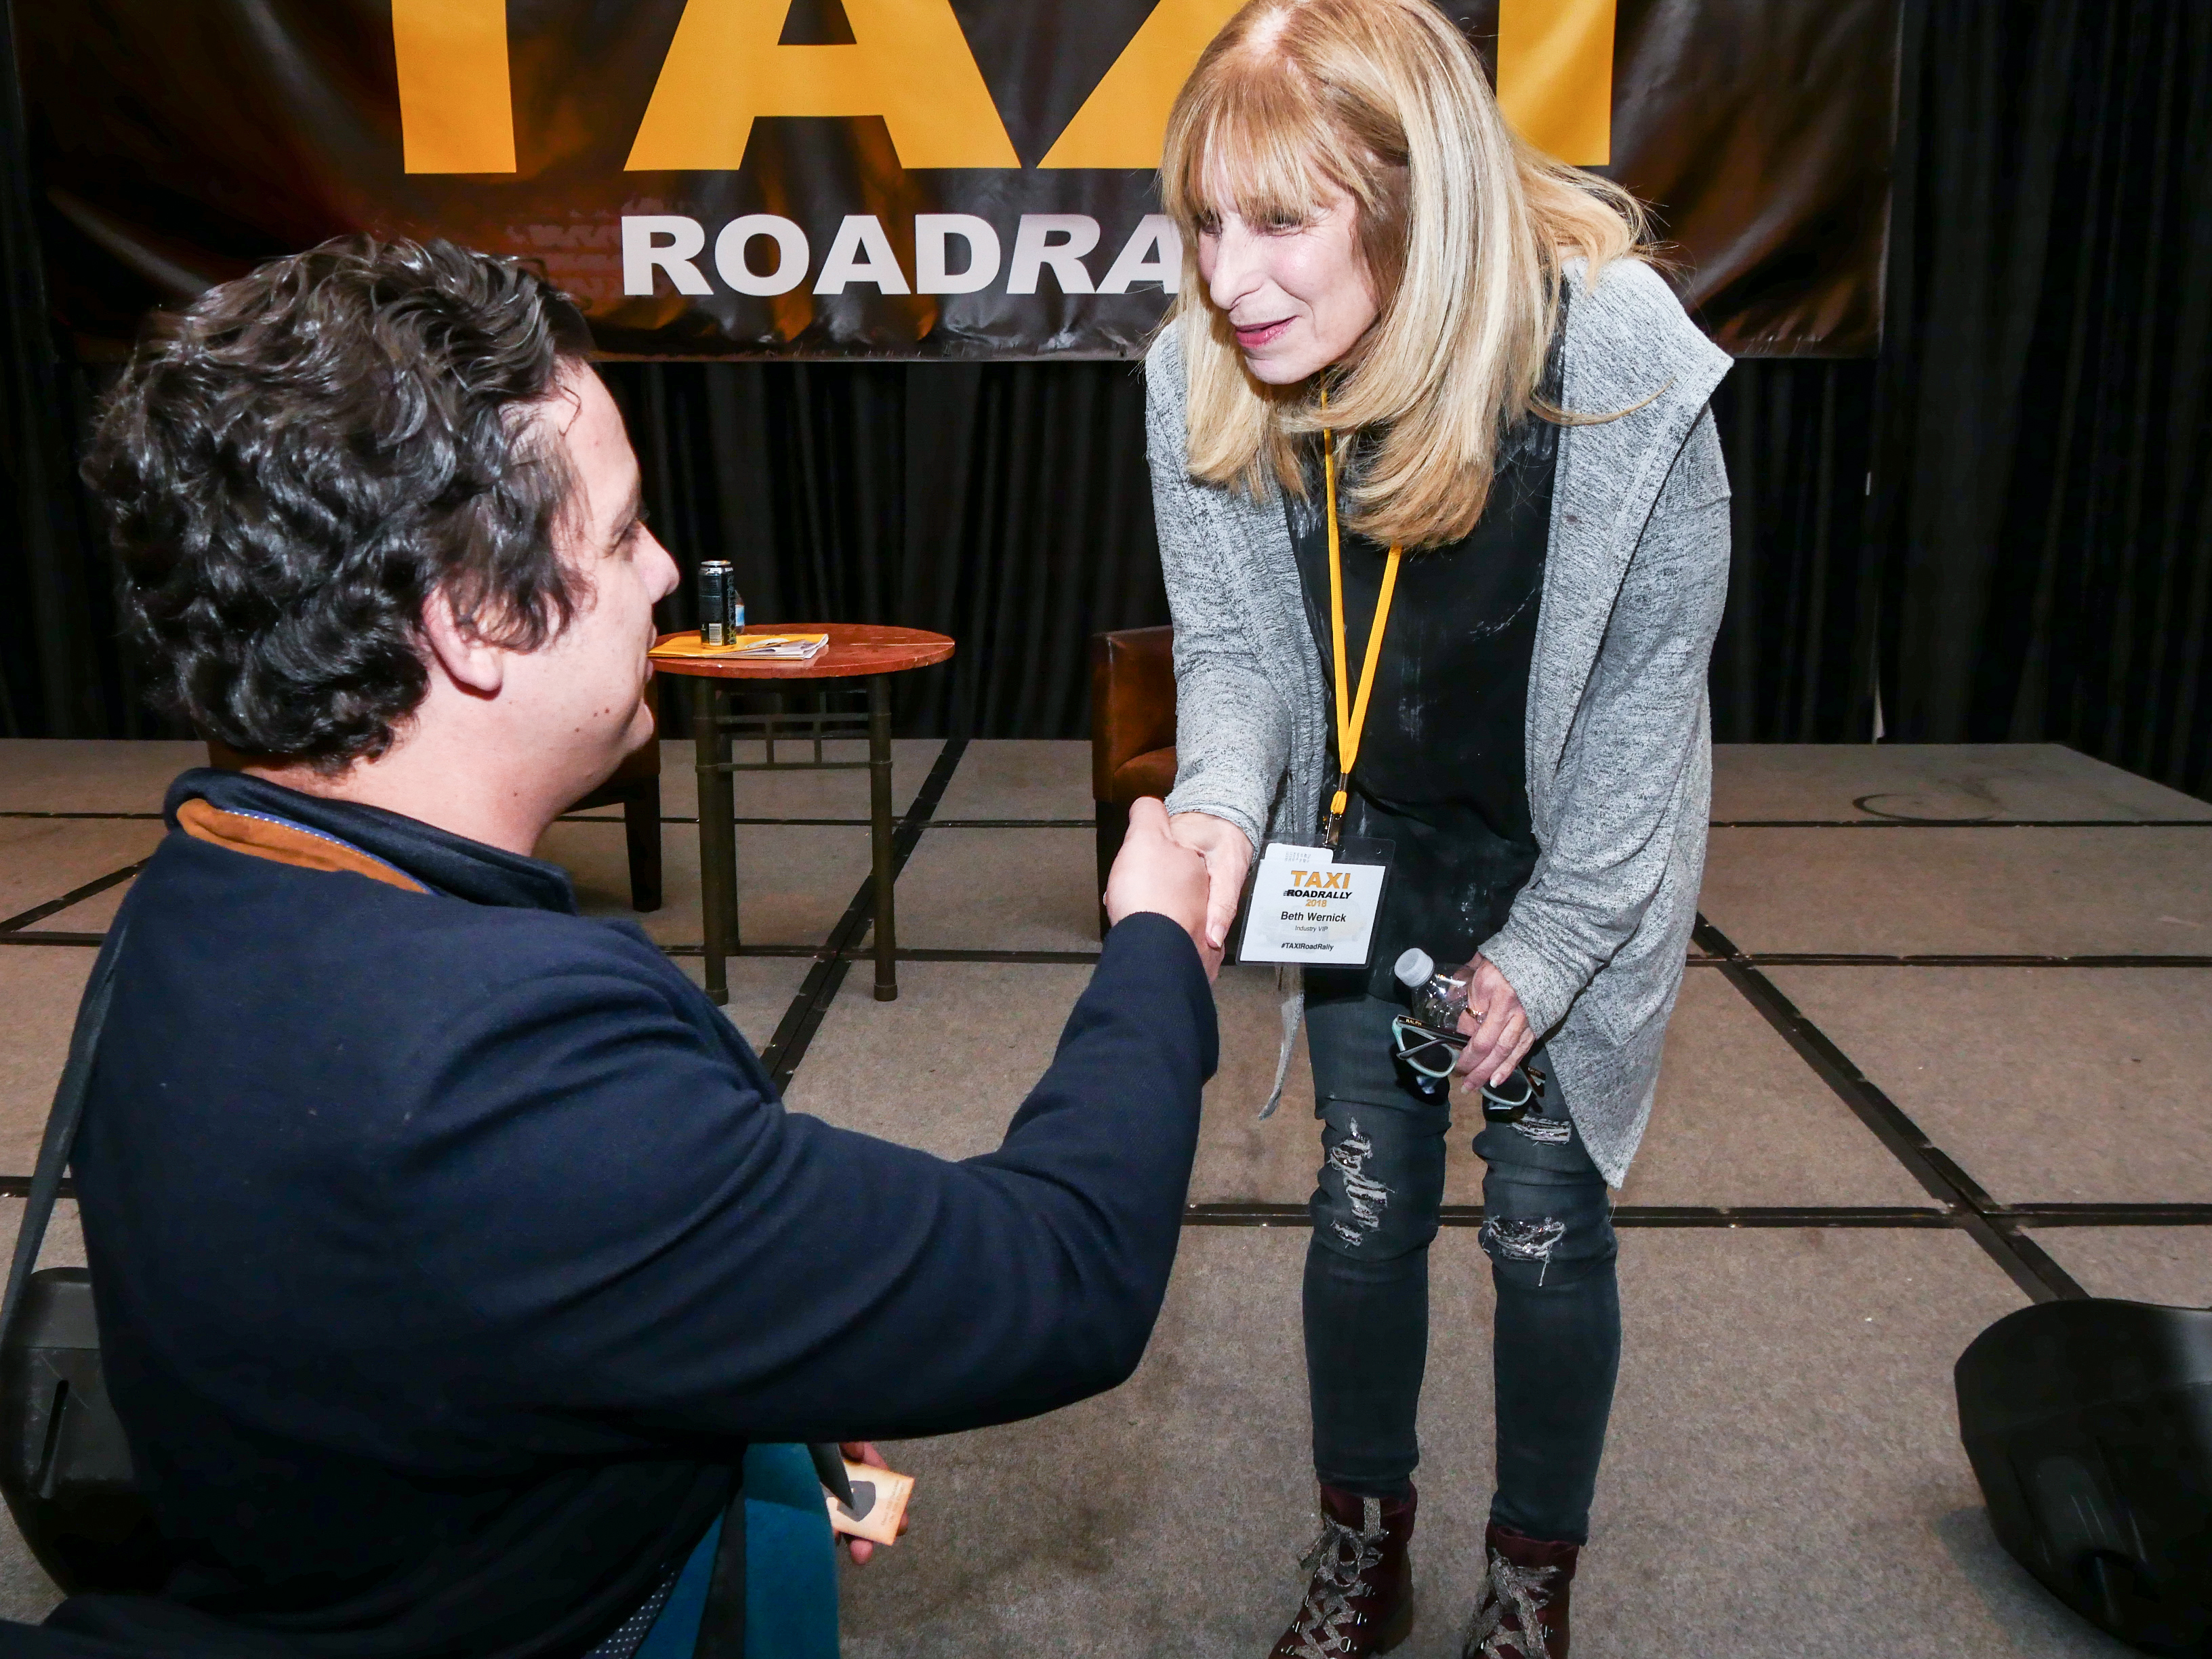 We love it when our panelists hang out and talk to Road Rally attendees after their panels. Beth Wernick stayed until every question was answered!